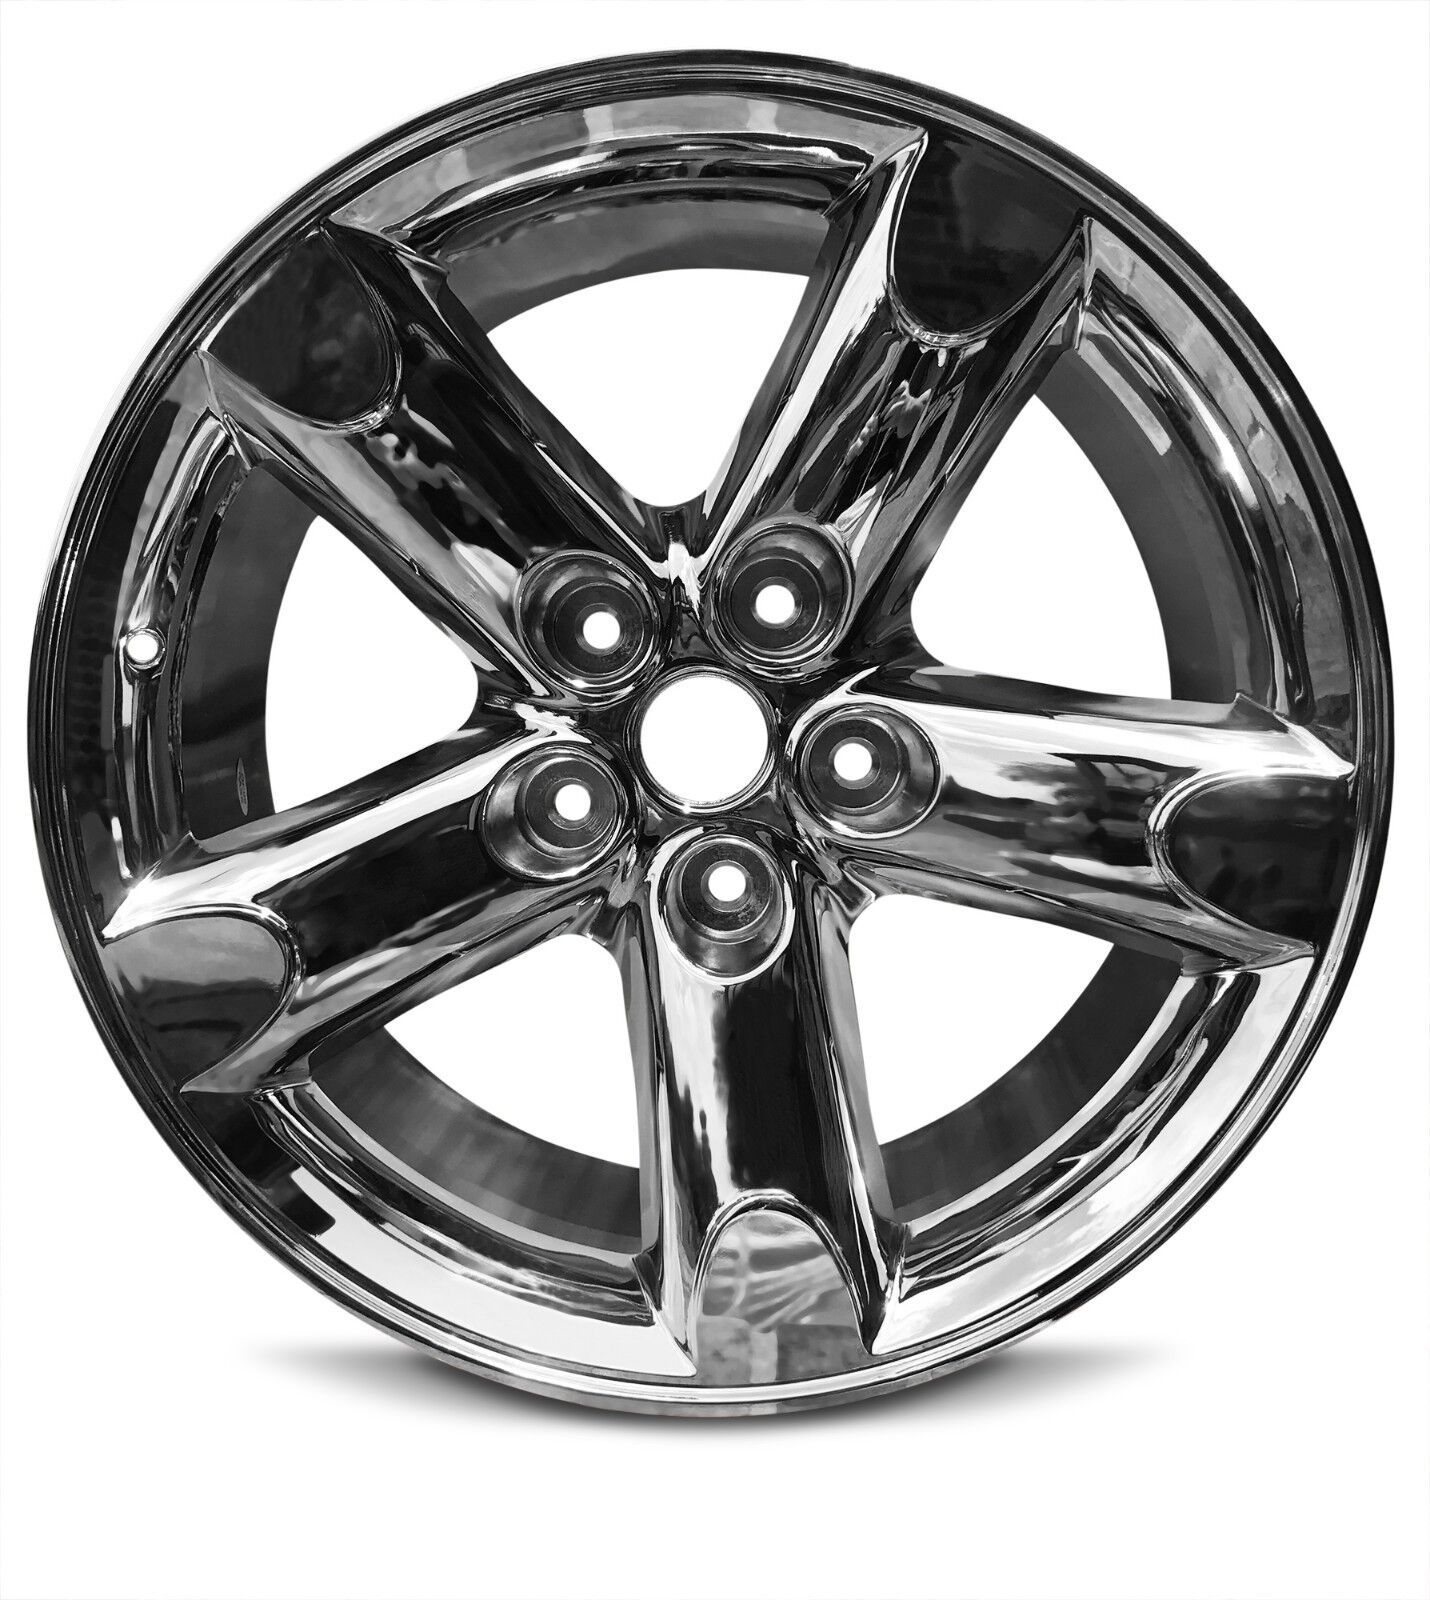 Set Of 4 Wheels 20x9 Inch Chrome Rim 2006-2009 Dodge Ram